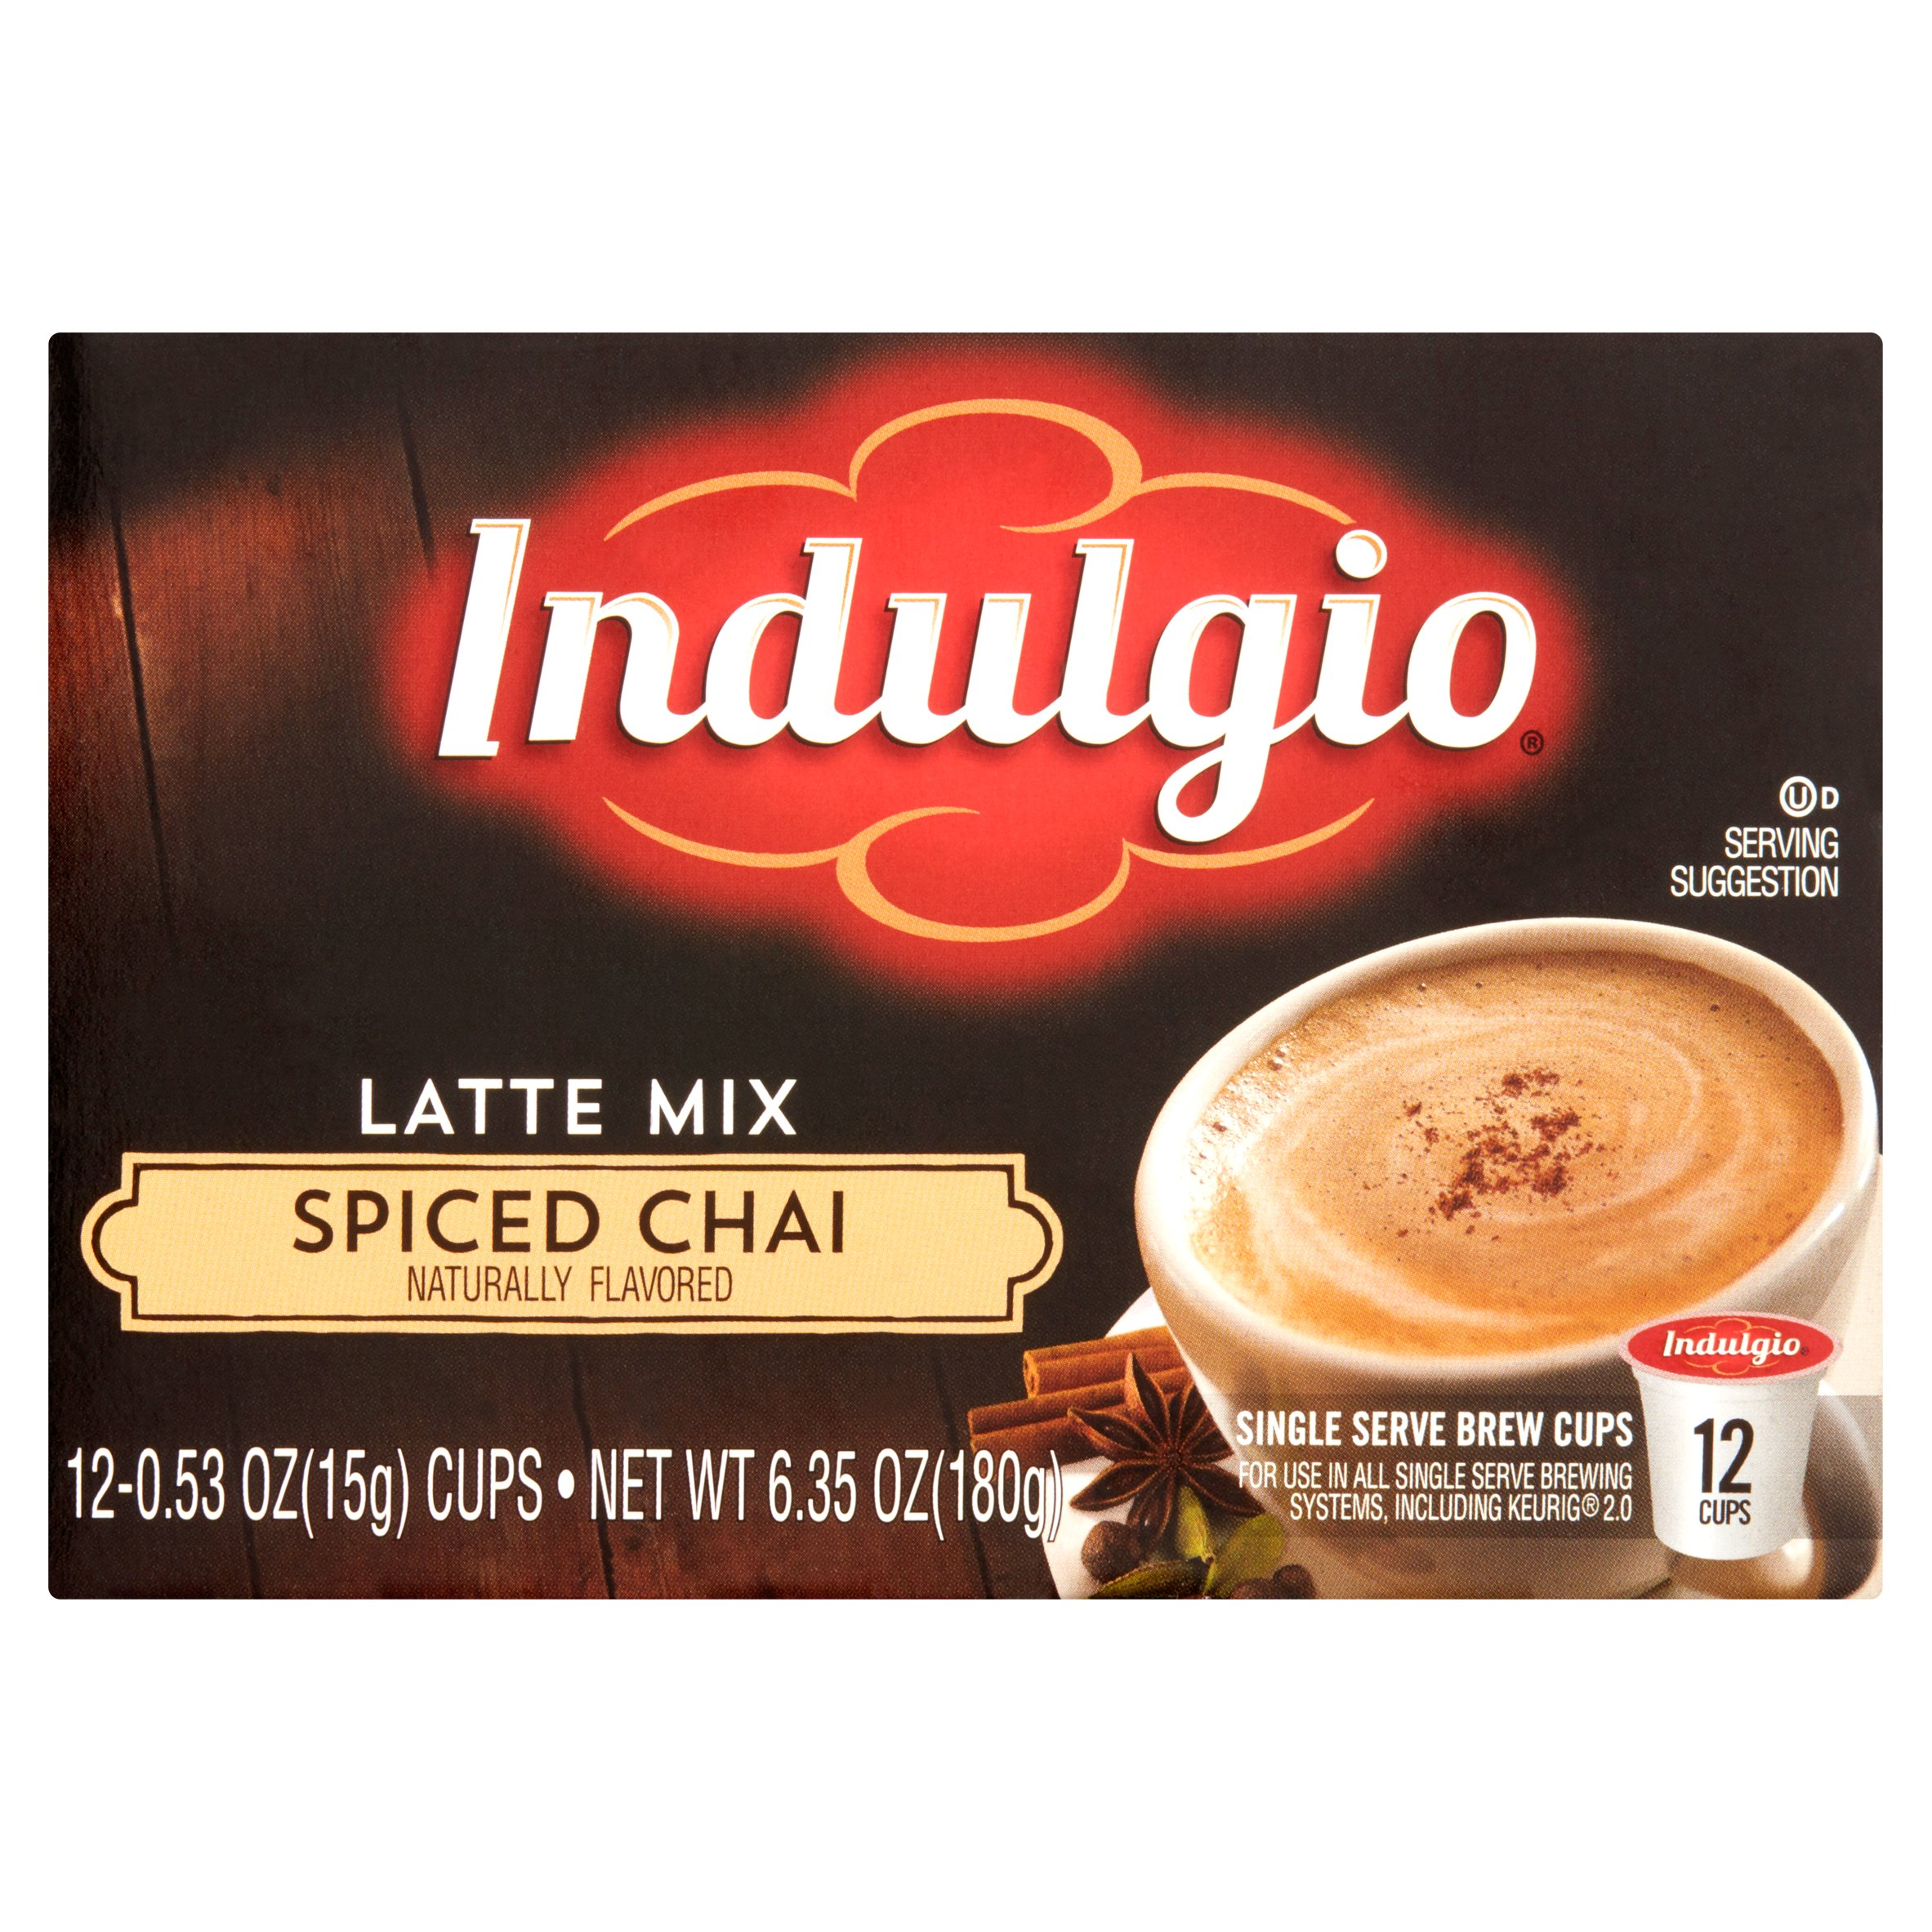 Indulgio Spiced Chai Latte Mix Single Serve Brew Cups, 0.53 oz, 12 count